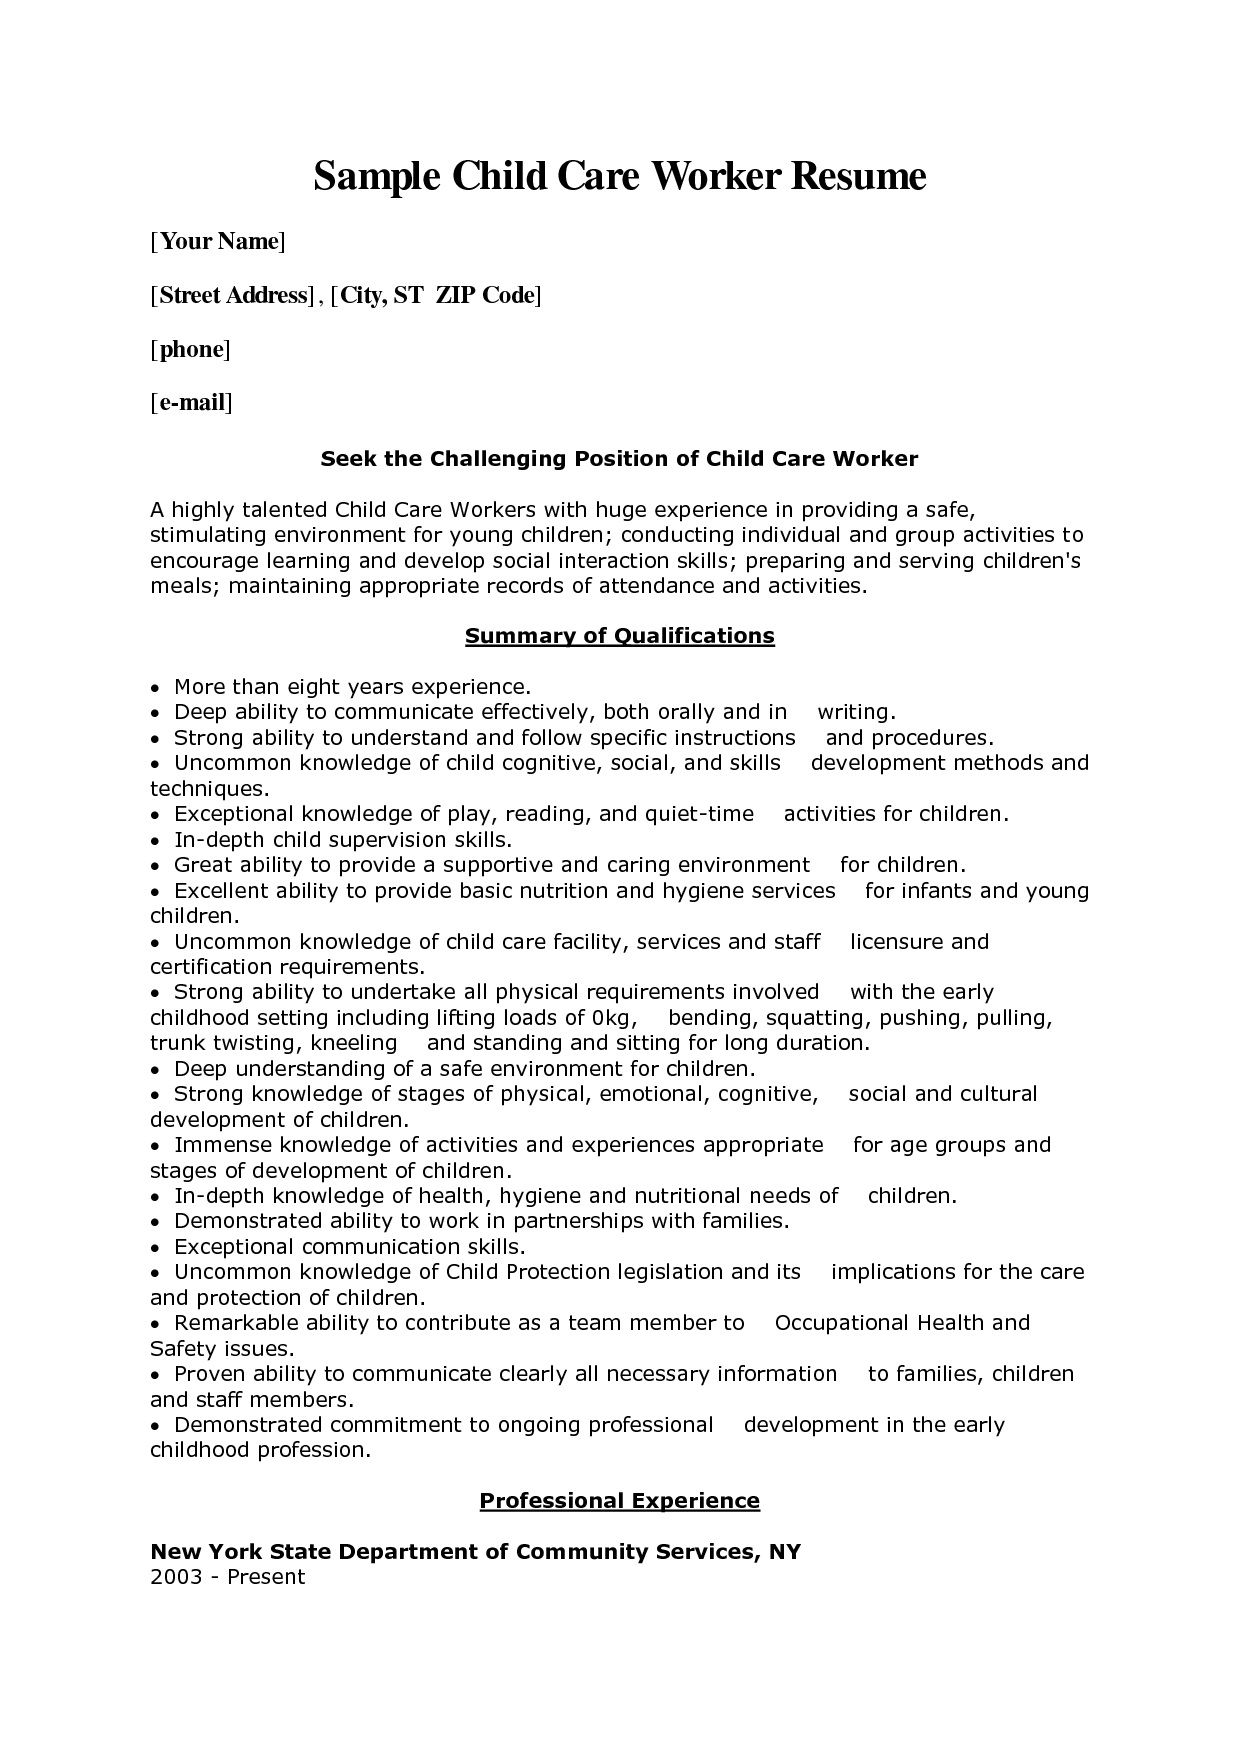 Child Care Worker Cover Letter Sample   Child Care Worker Cover Letter  Sample We Provide As